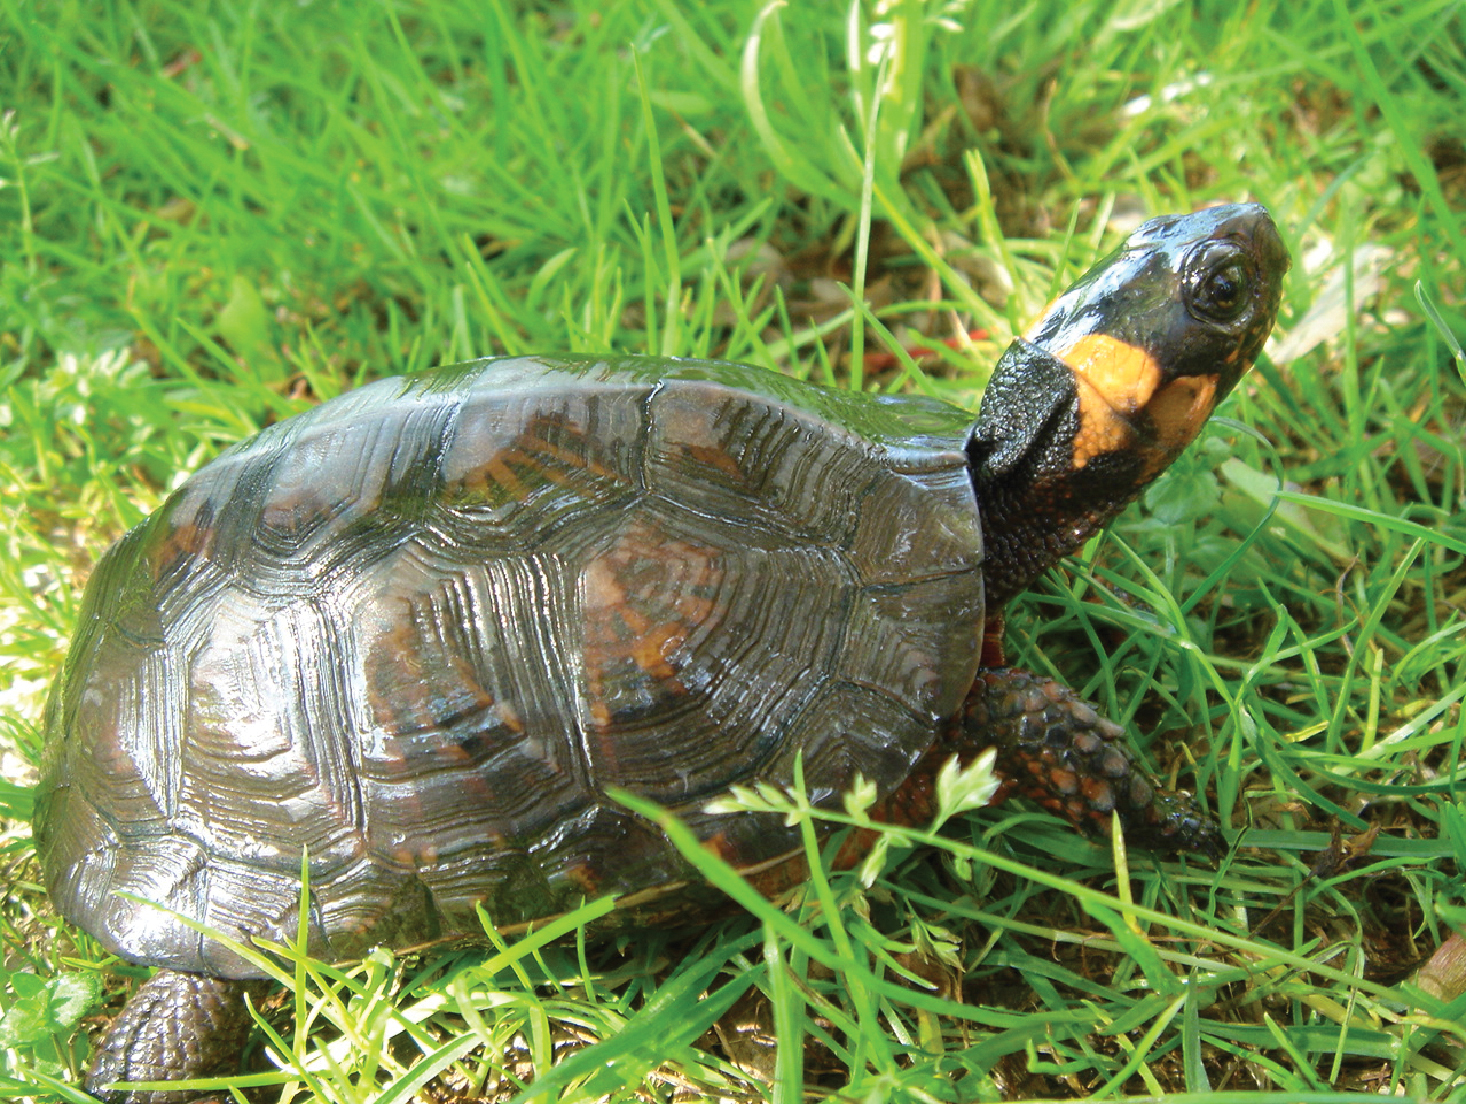 bog turtle Identification bog turtles are one of the smallest and most secretive of north american turtles, measuring up to 4 inches as adults the bog turtle is dark brown with a distinct orange patch on either side of the head.